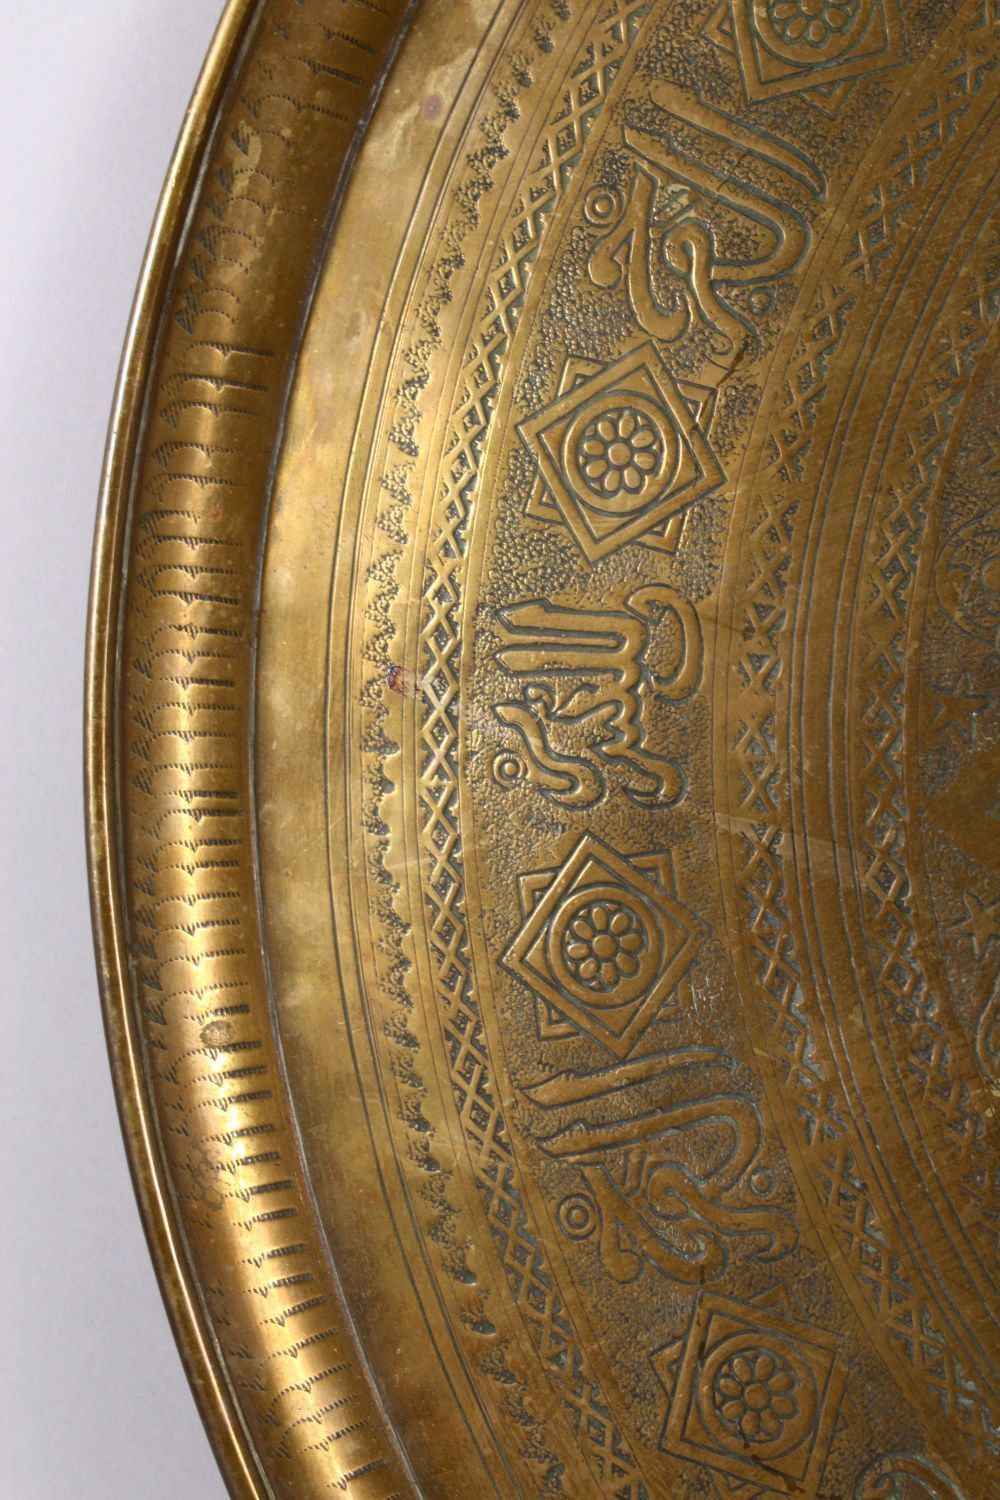 A LARGE 19TH CENTURY EGYPTIAN BRASS CHARGER / TRAY, with carved bands of calligraphy and motif - Image 4 of 7